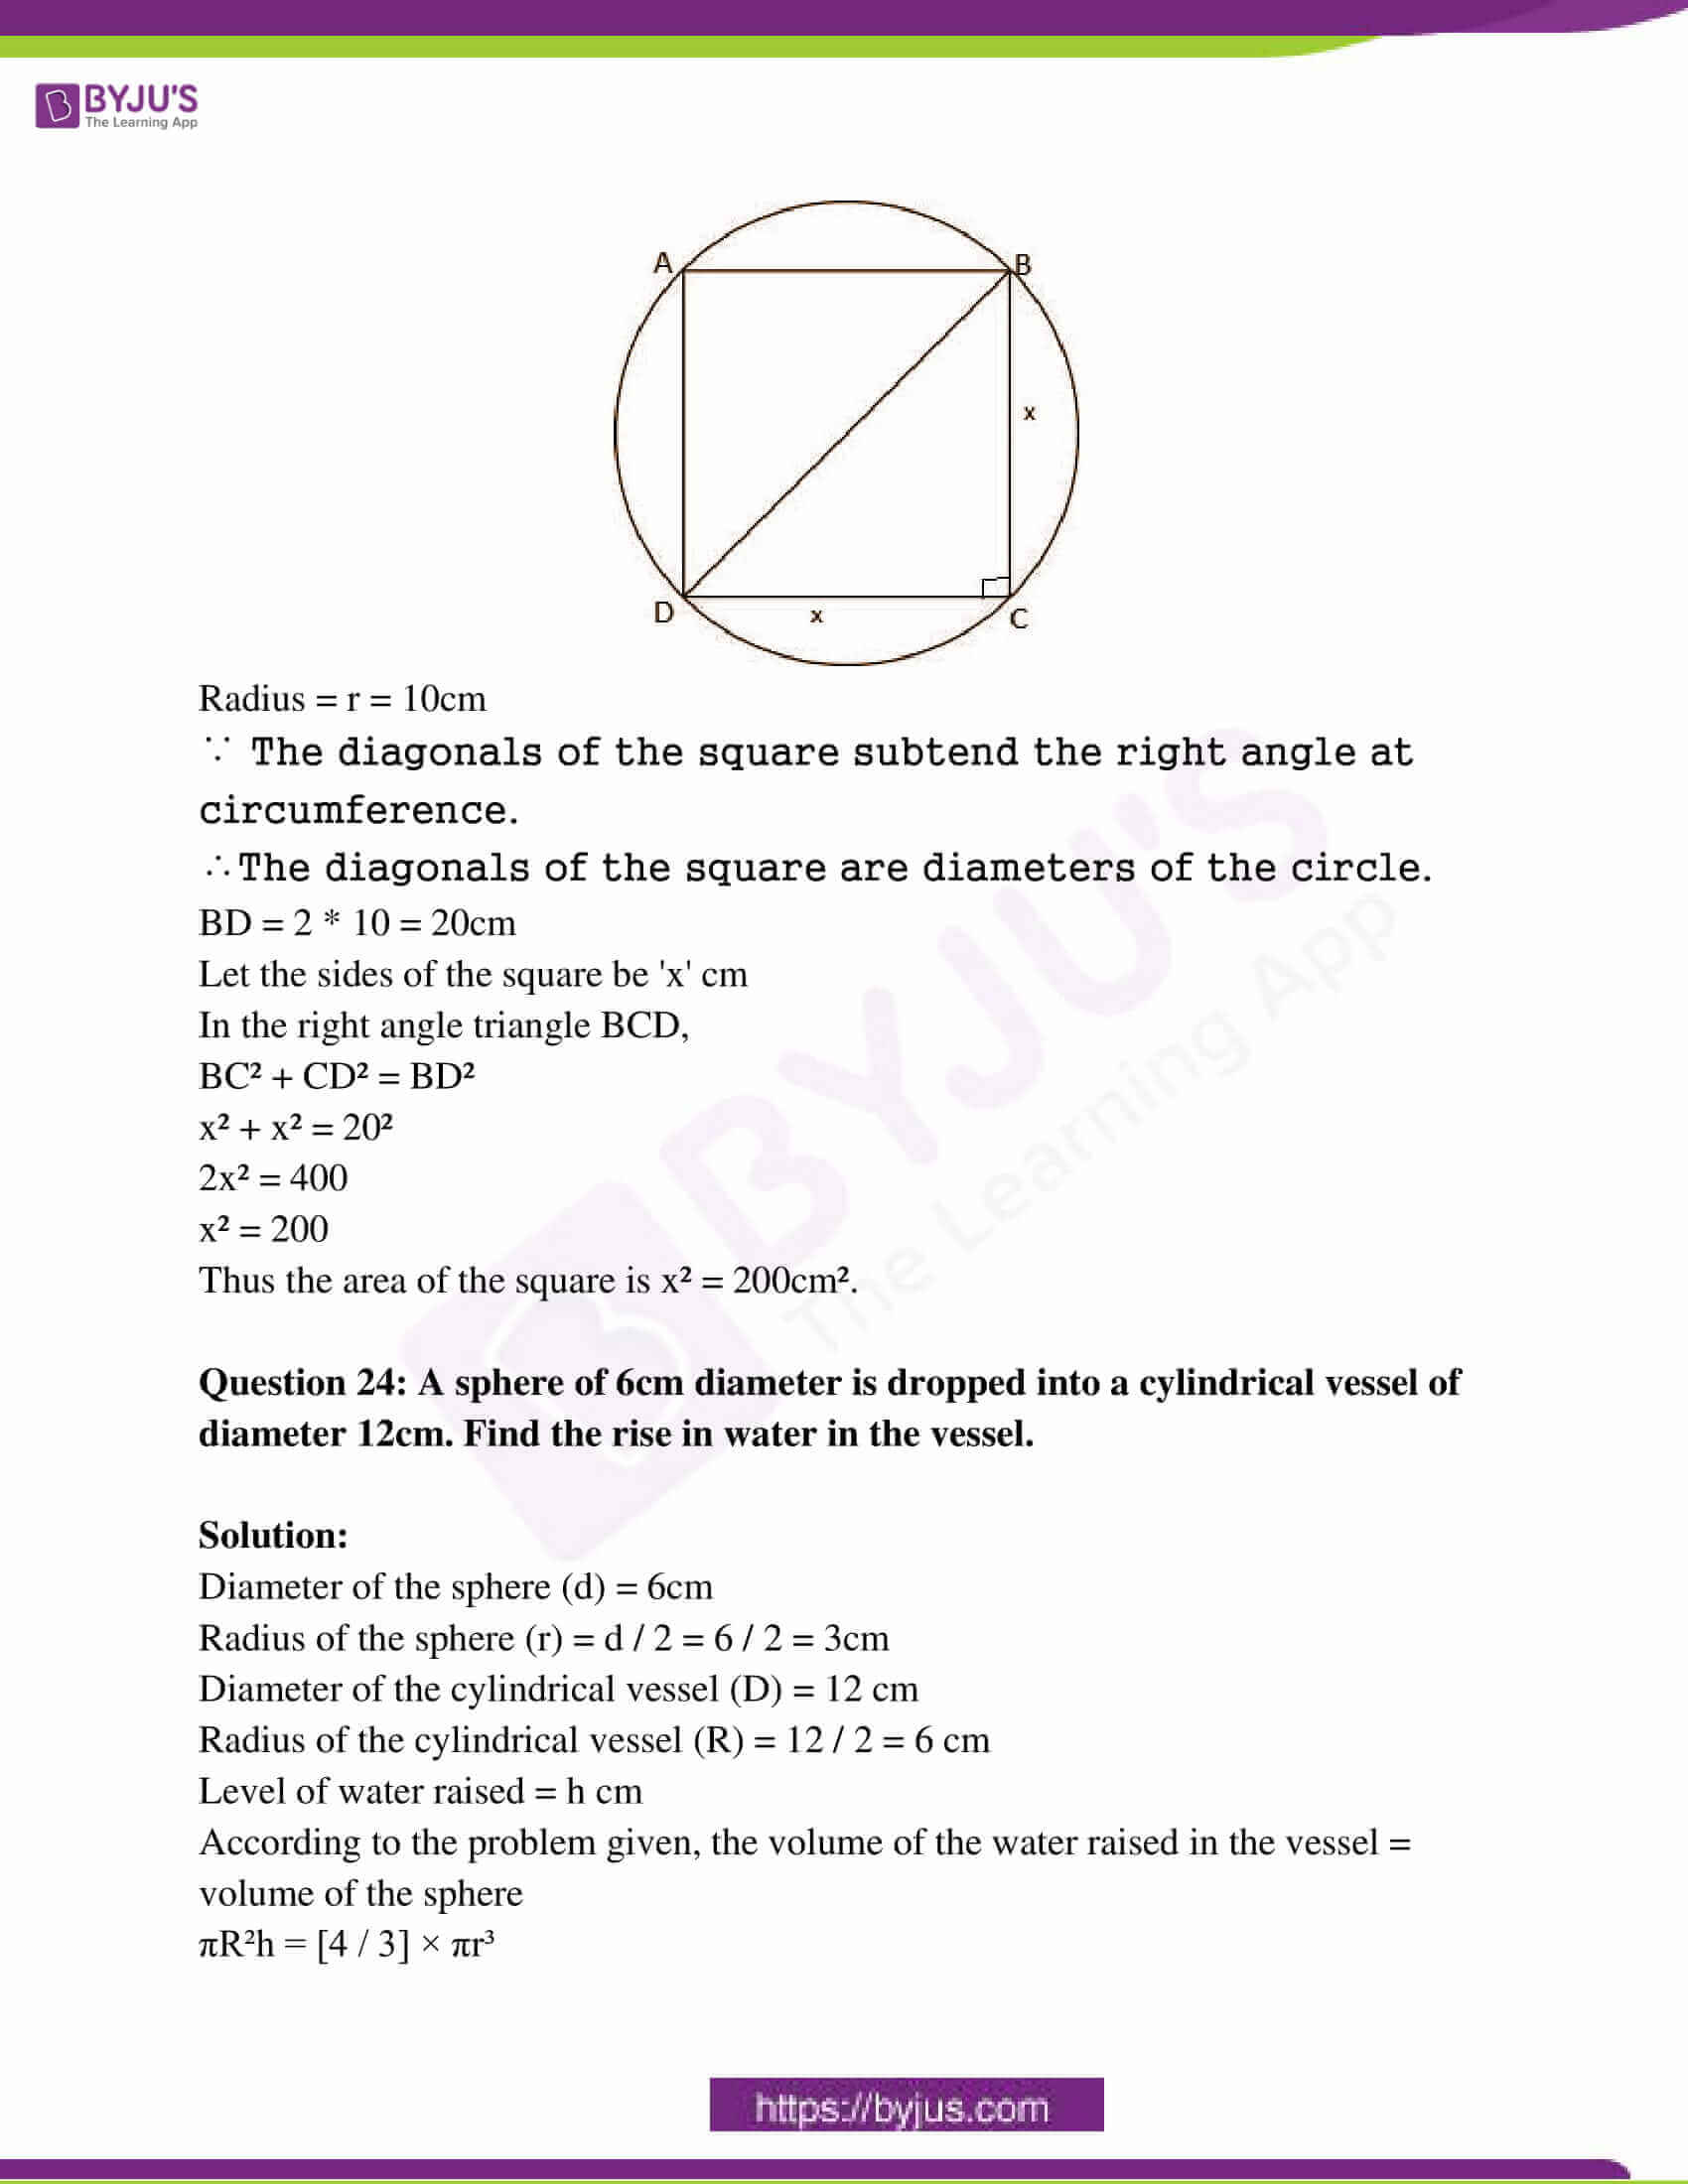 rajasthan board class 10 examination question paper sol march 2019 13